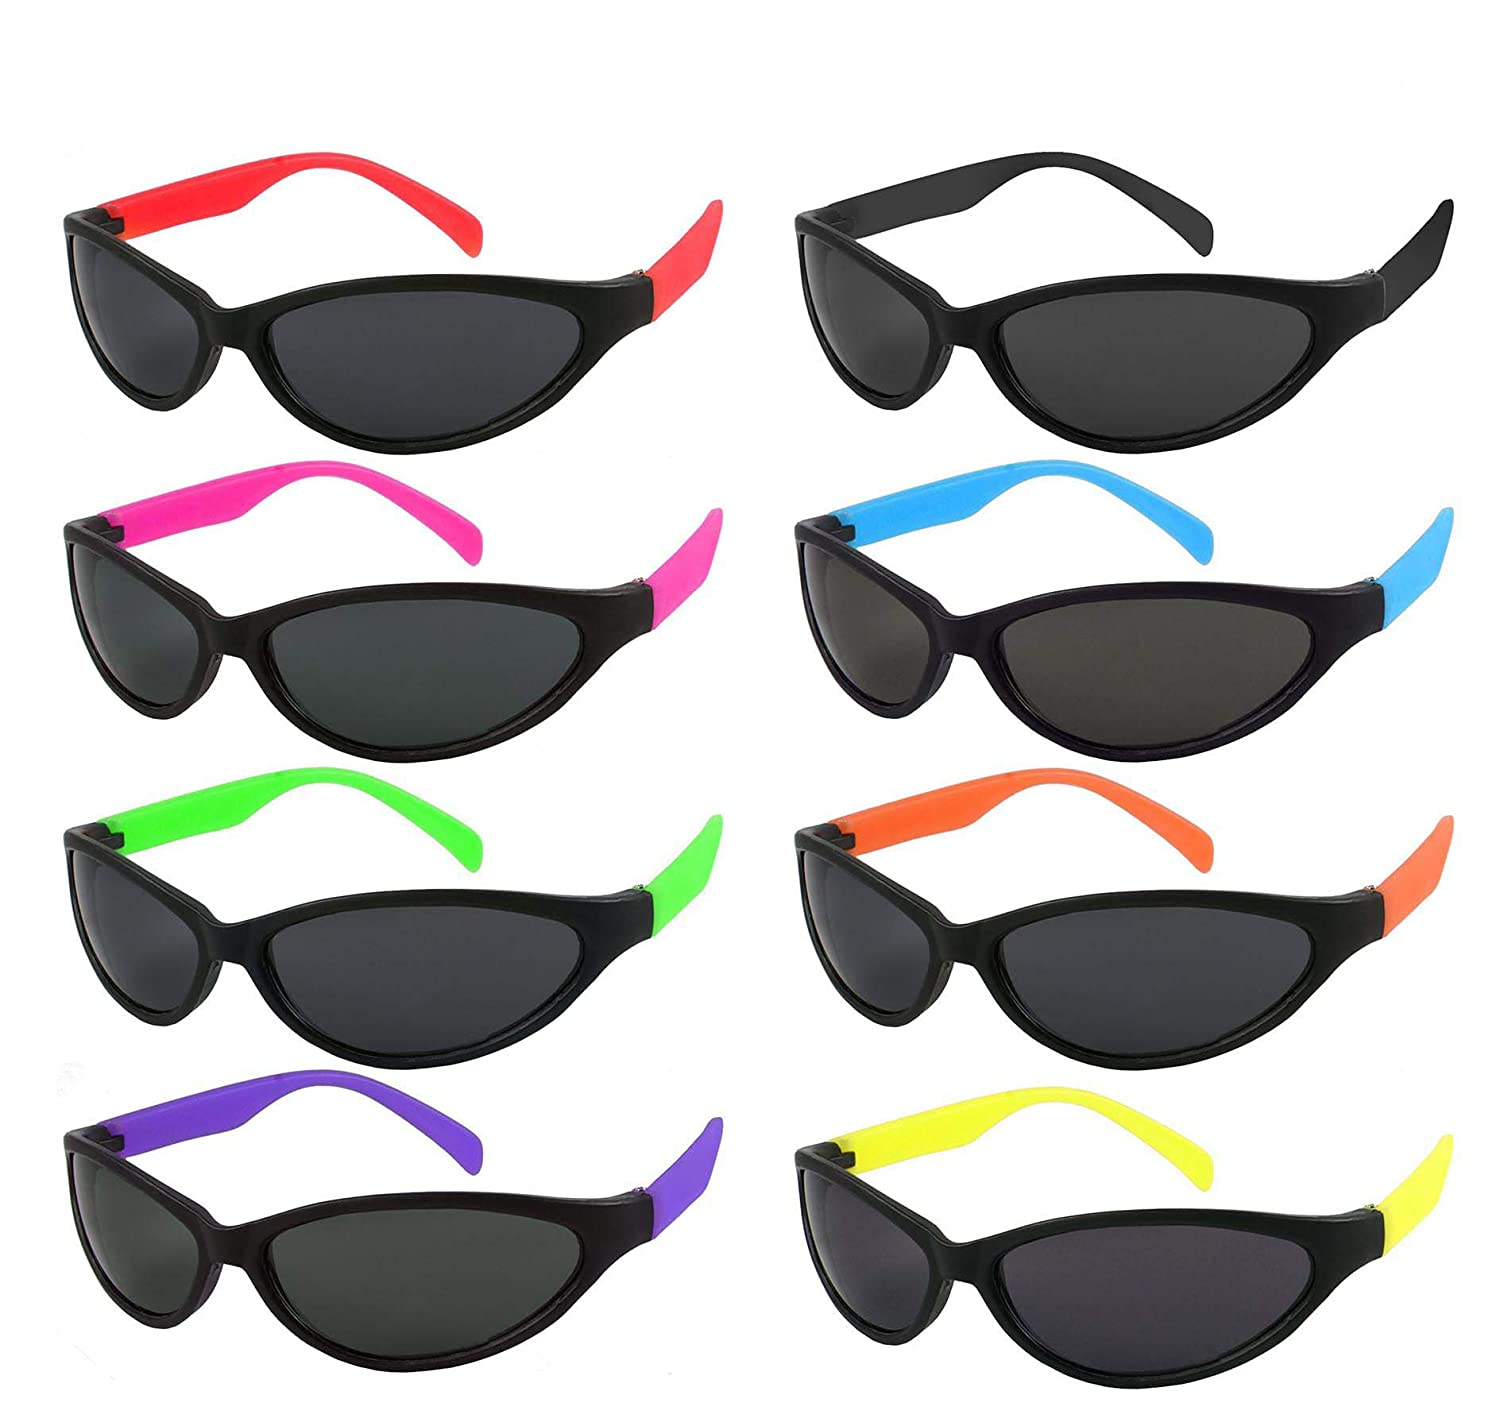 305f139cfe Amazon.com  Edge I-Wear 6 Pack Neon Party Sunglasses with CPSIA  certified-Lead(Pb) Content Free UV 400 Lens(Made in Taiwan)5402RA-SET-6   Clothing